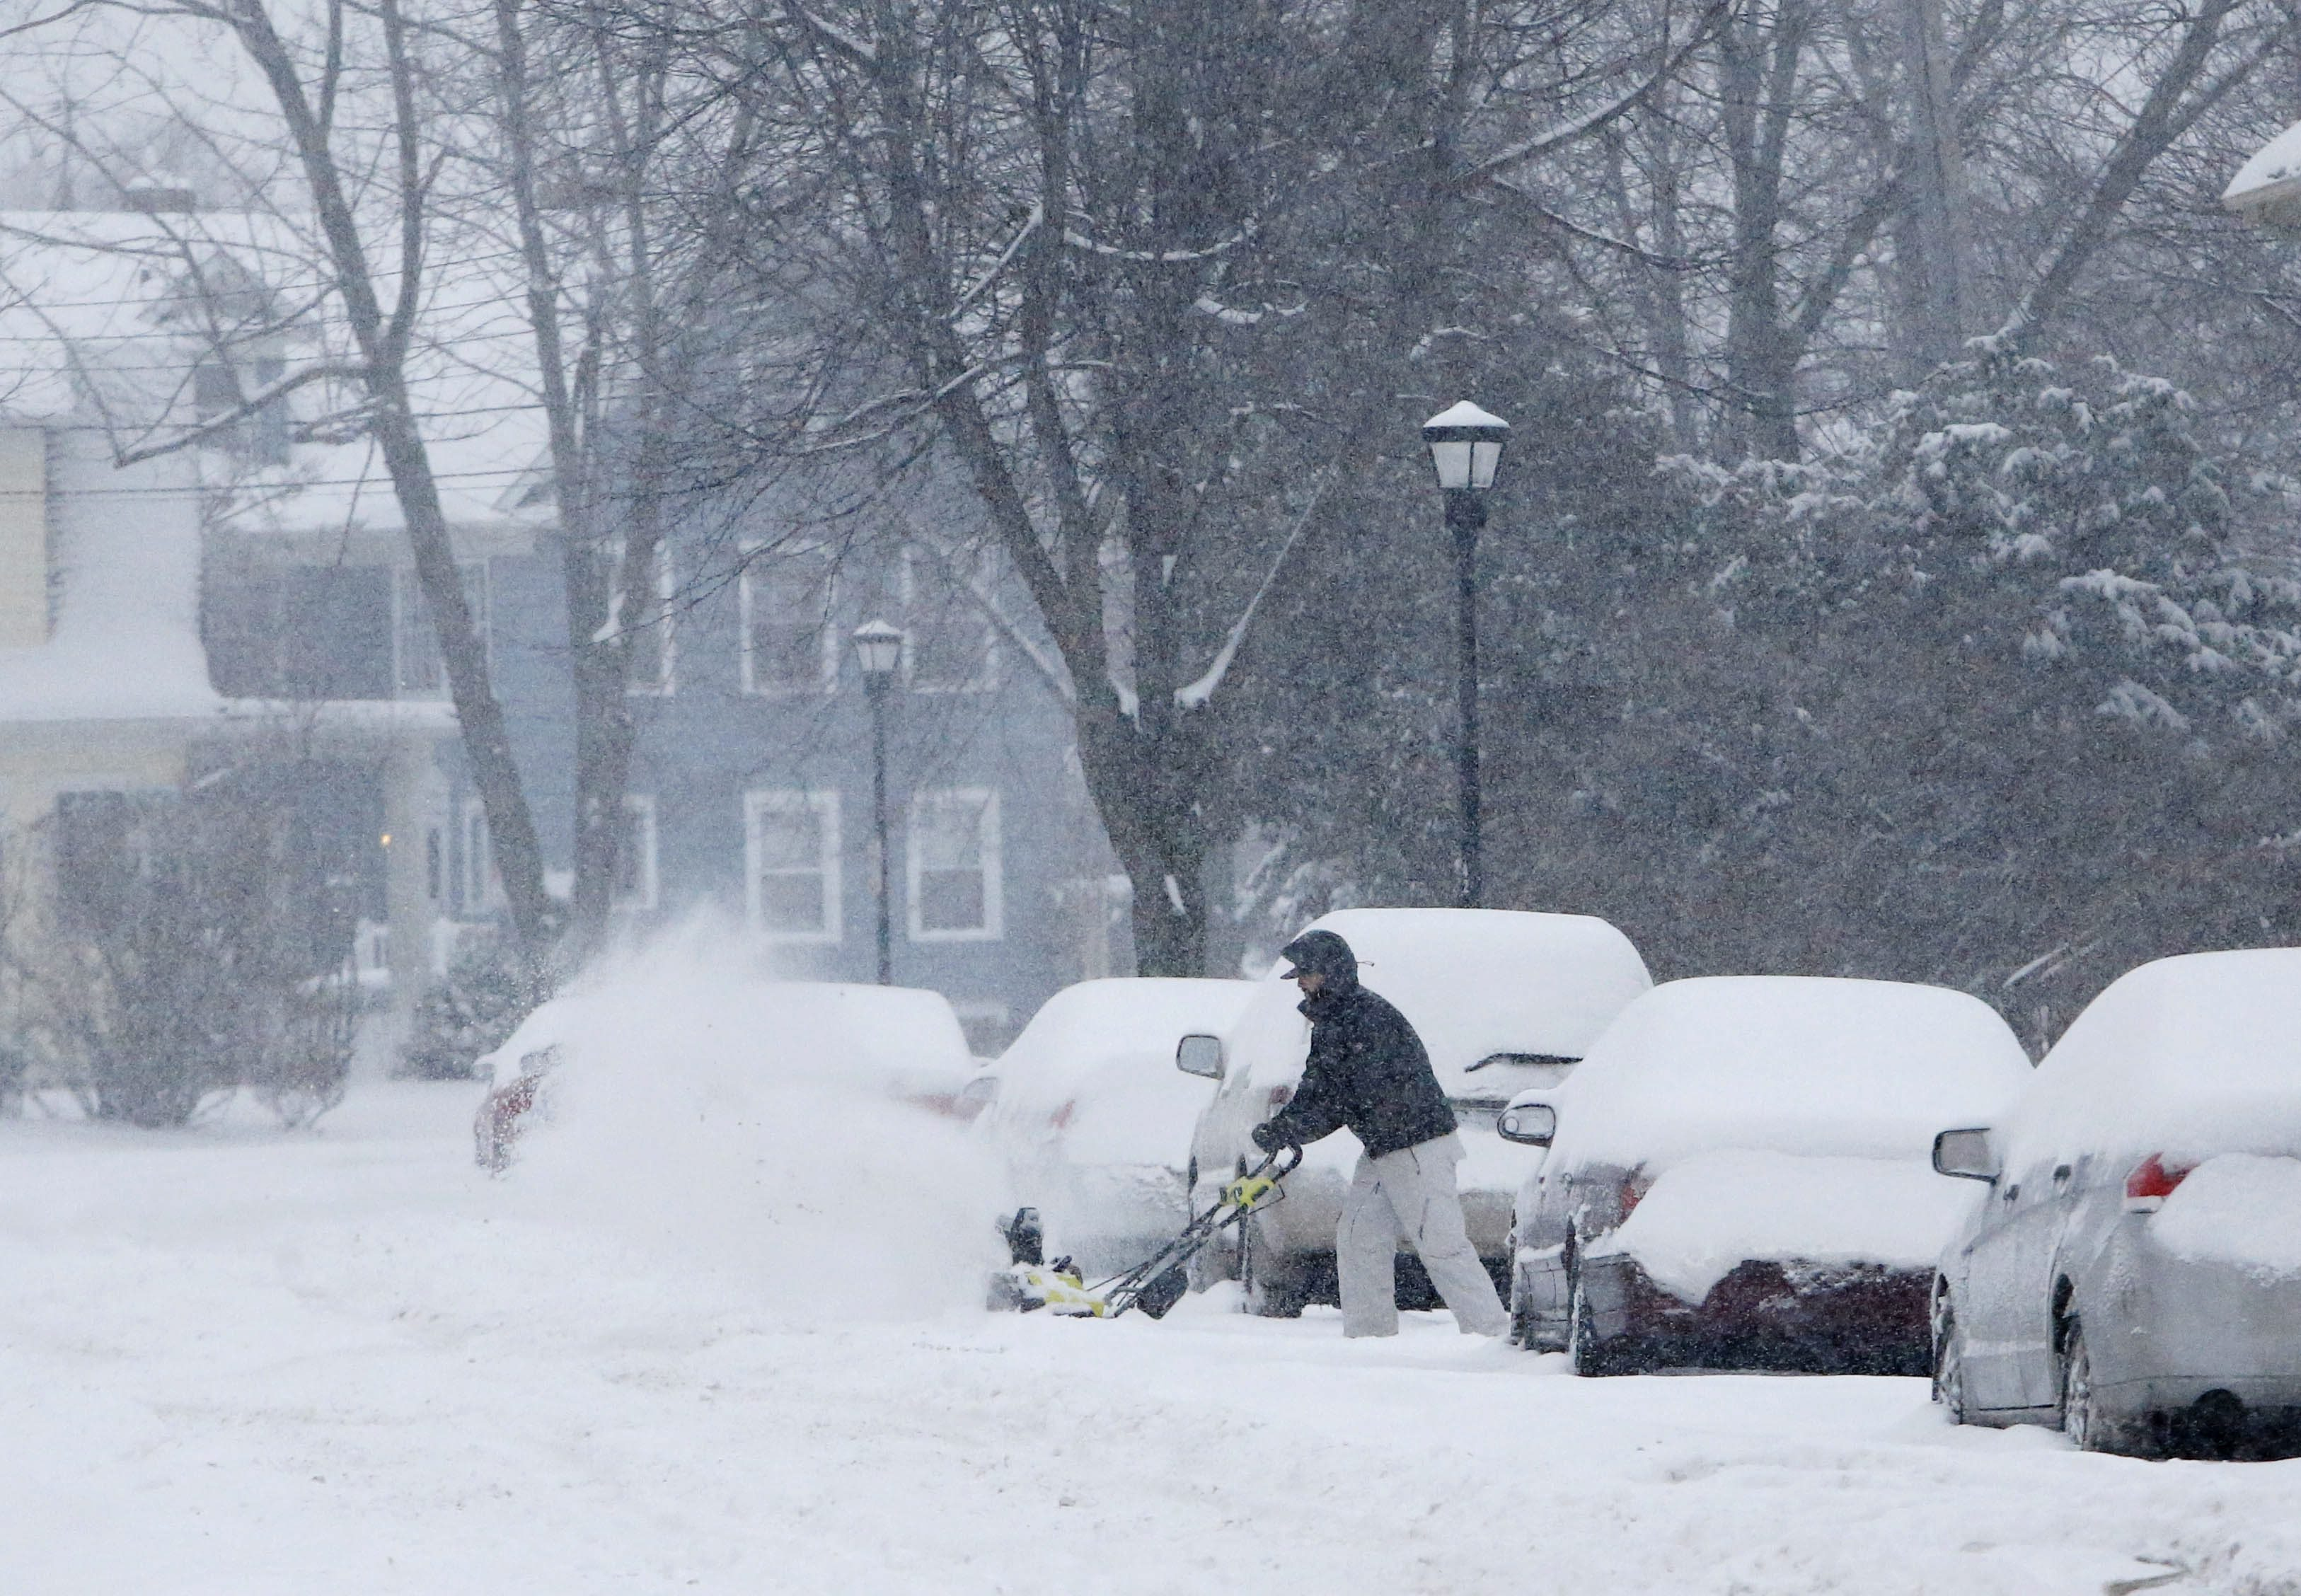 A man uses a snowblower to clear out a driveway on Saranac Avenue in North Buffalo on Feb. 16. (Derek Gee/Buffalo News)